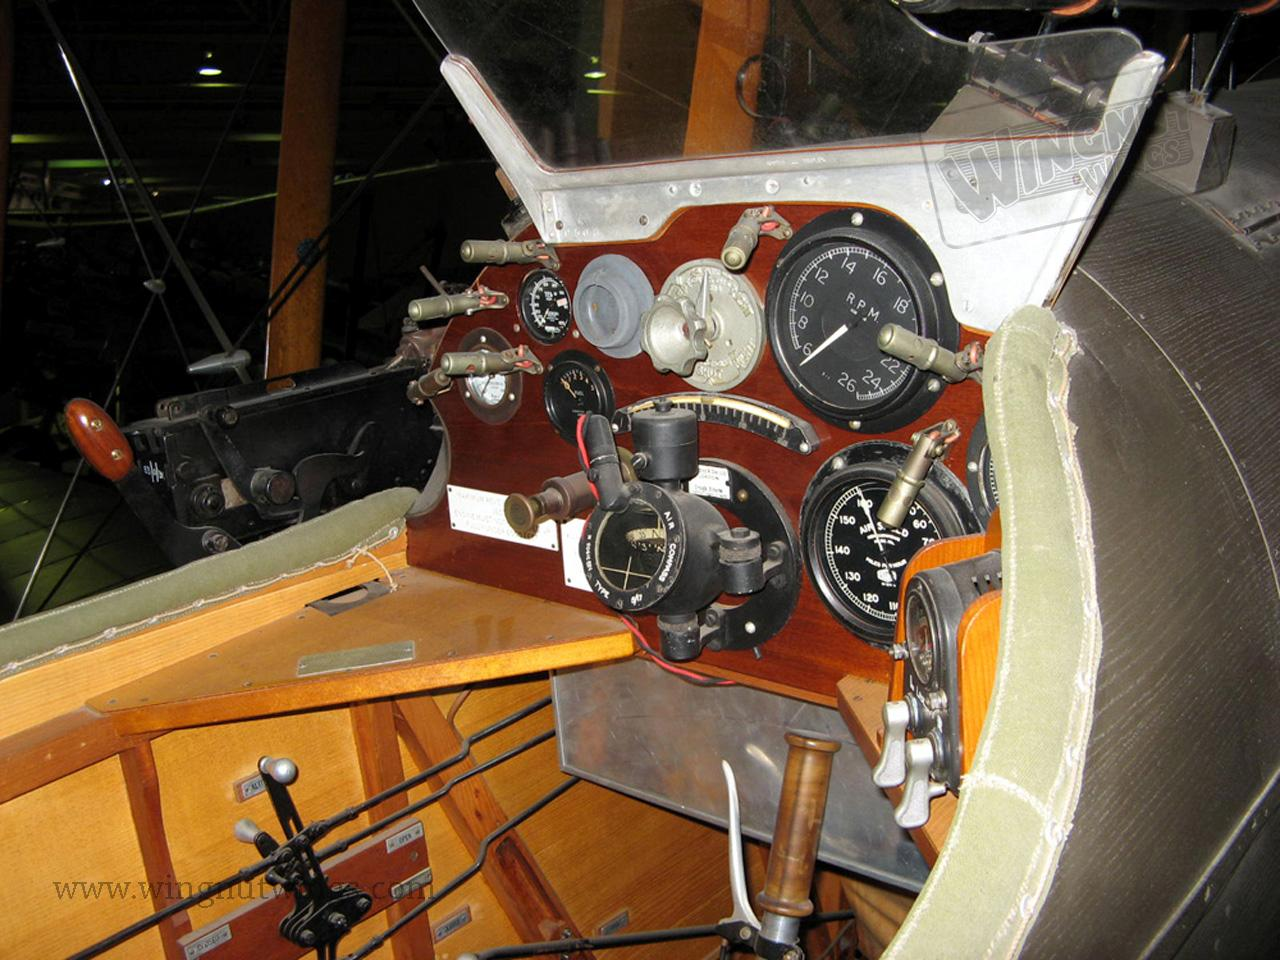 DH.9a%20F1010%20-%20RAF%20museum%20Hendon%20UK.%20Cockpit%20detail%20%281%29.jpg